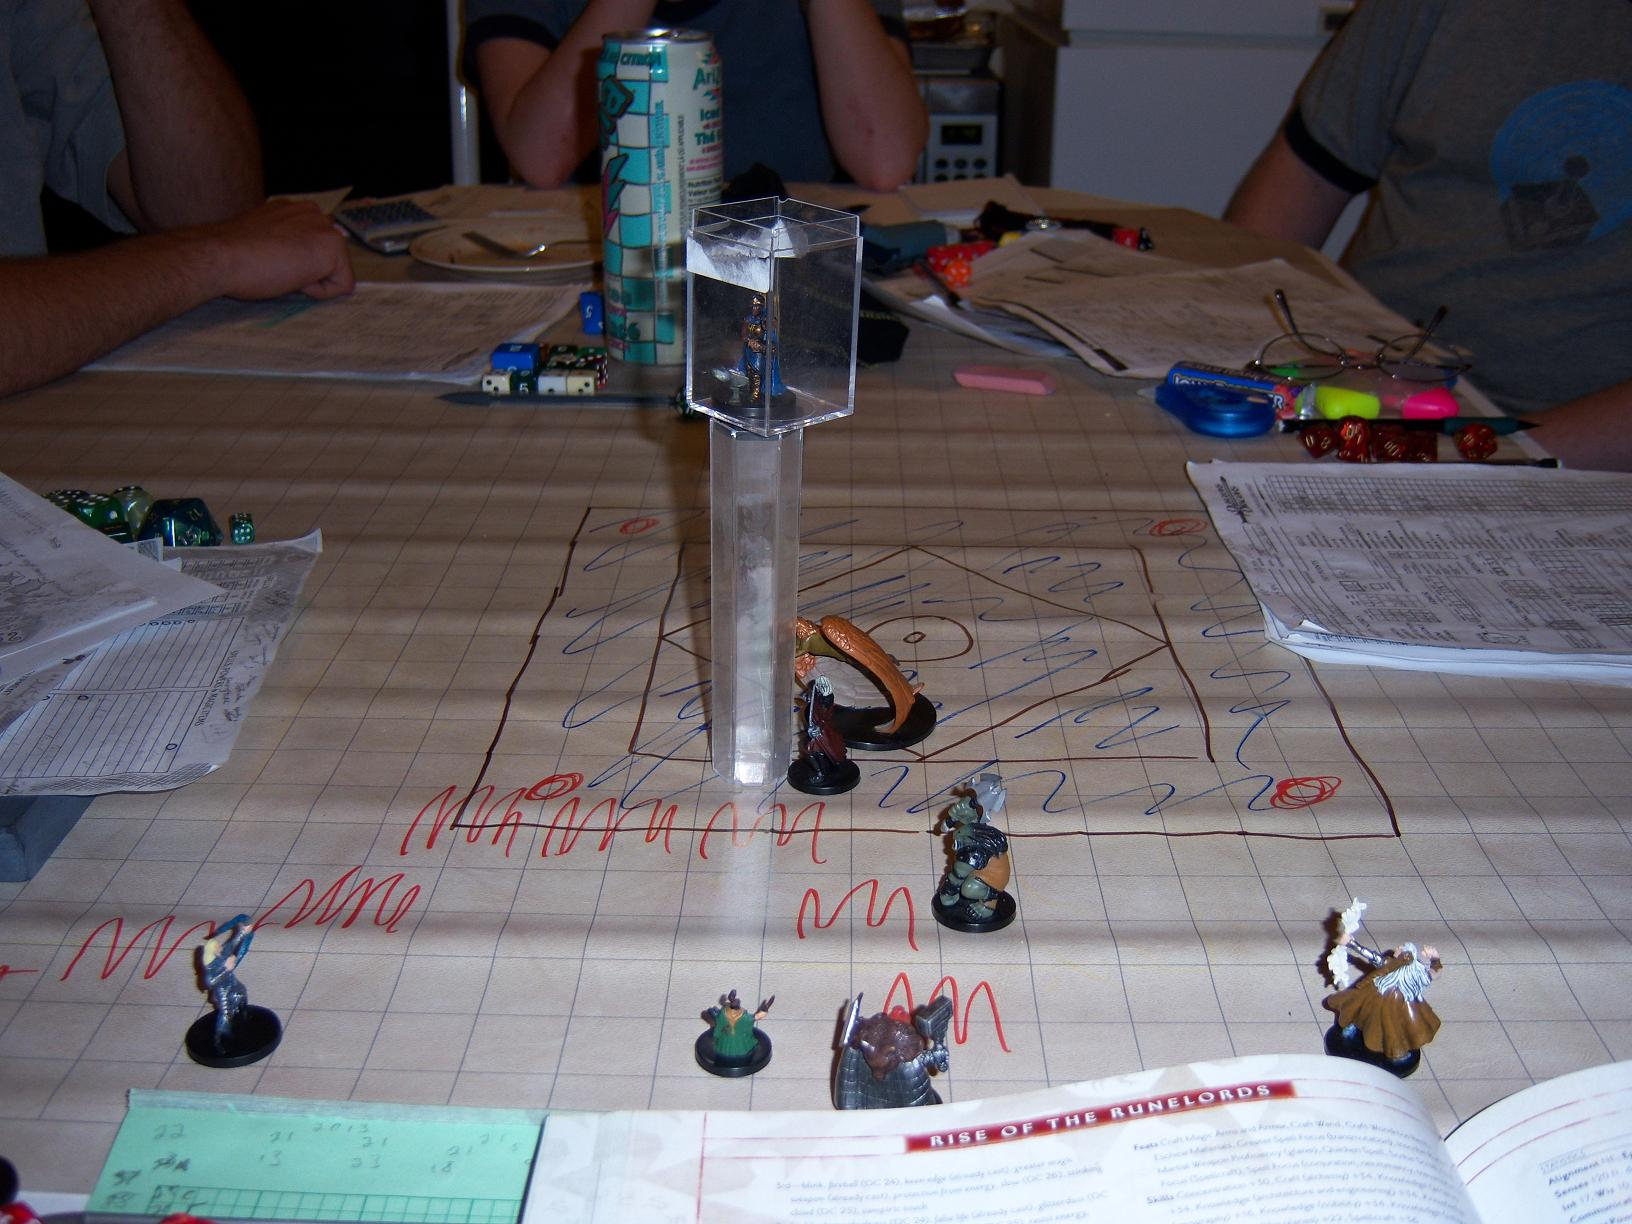 criticalanklebites com » Pathfinder 26 – One month after the